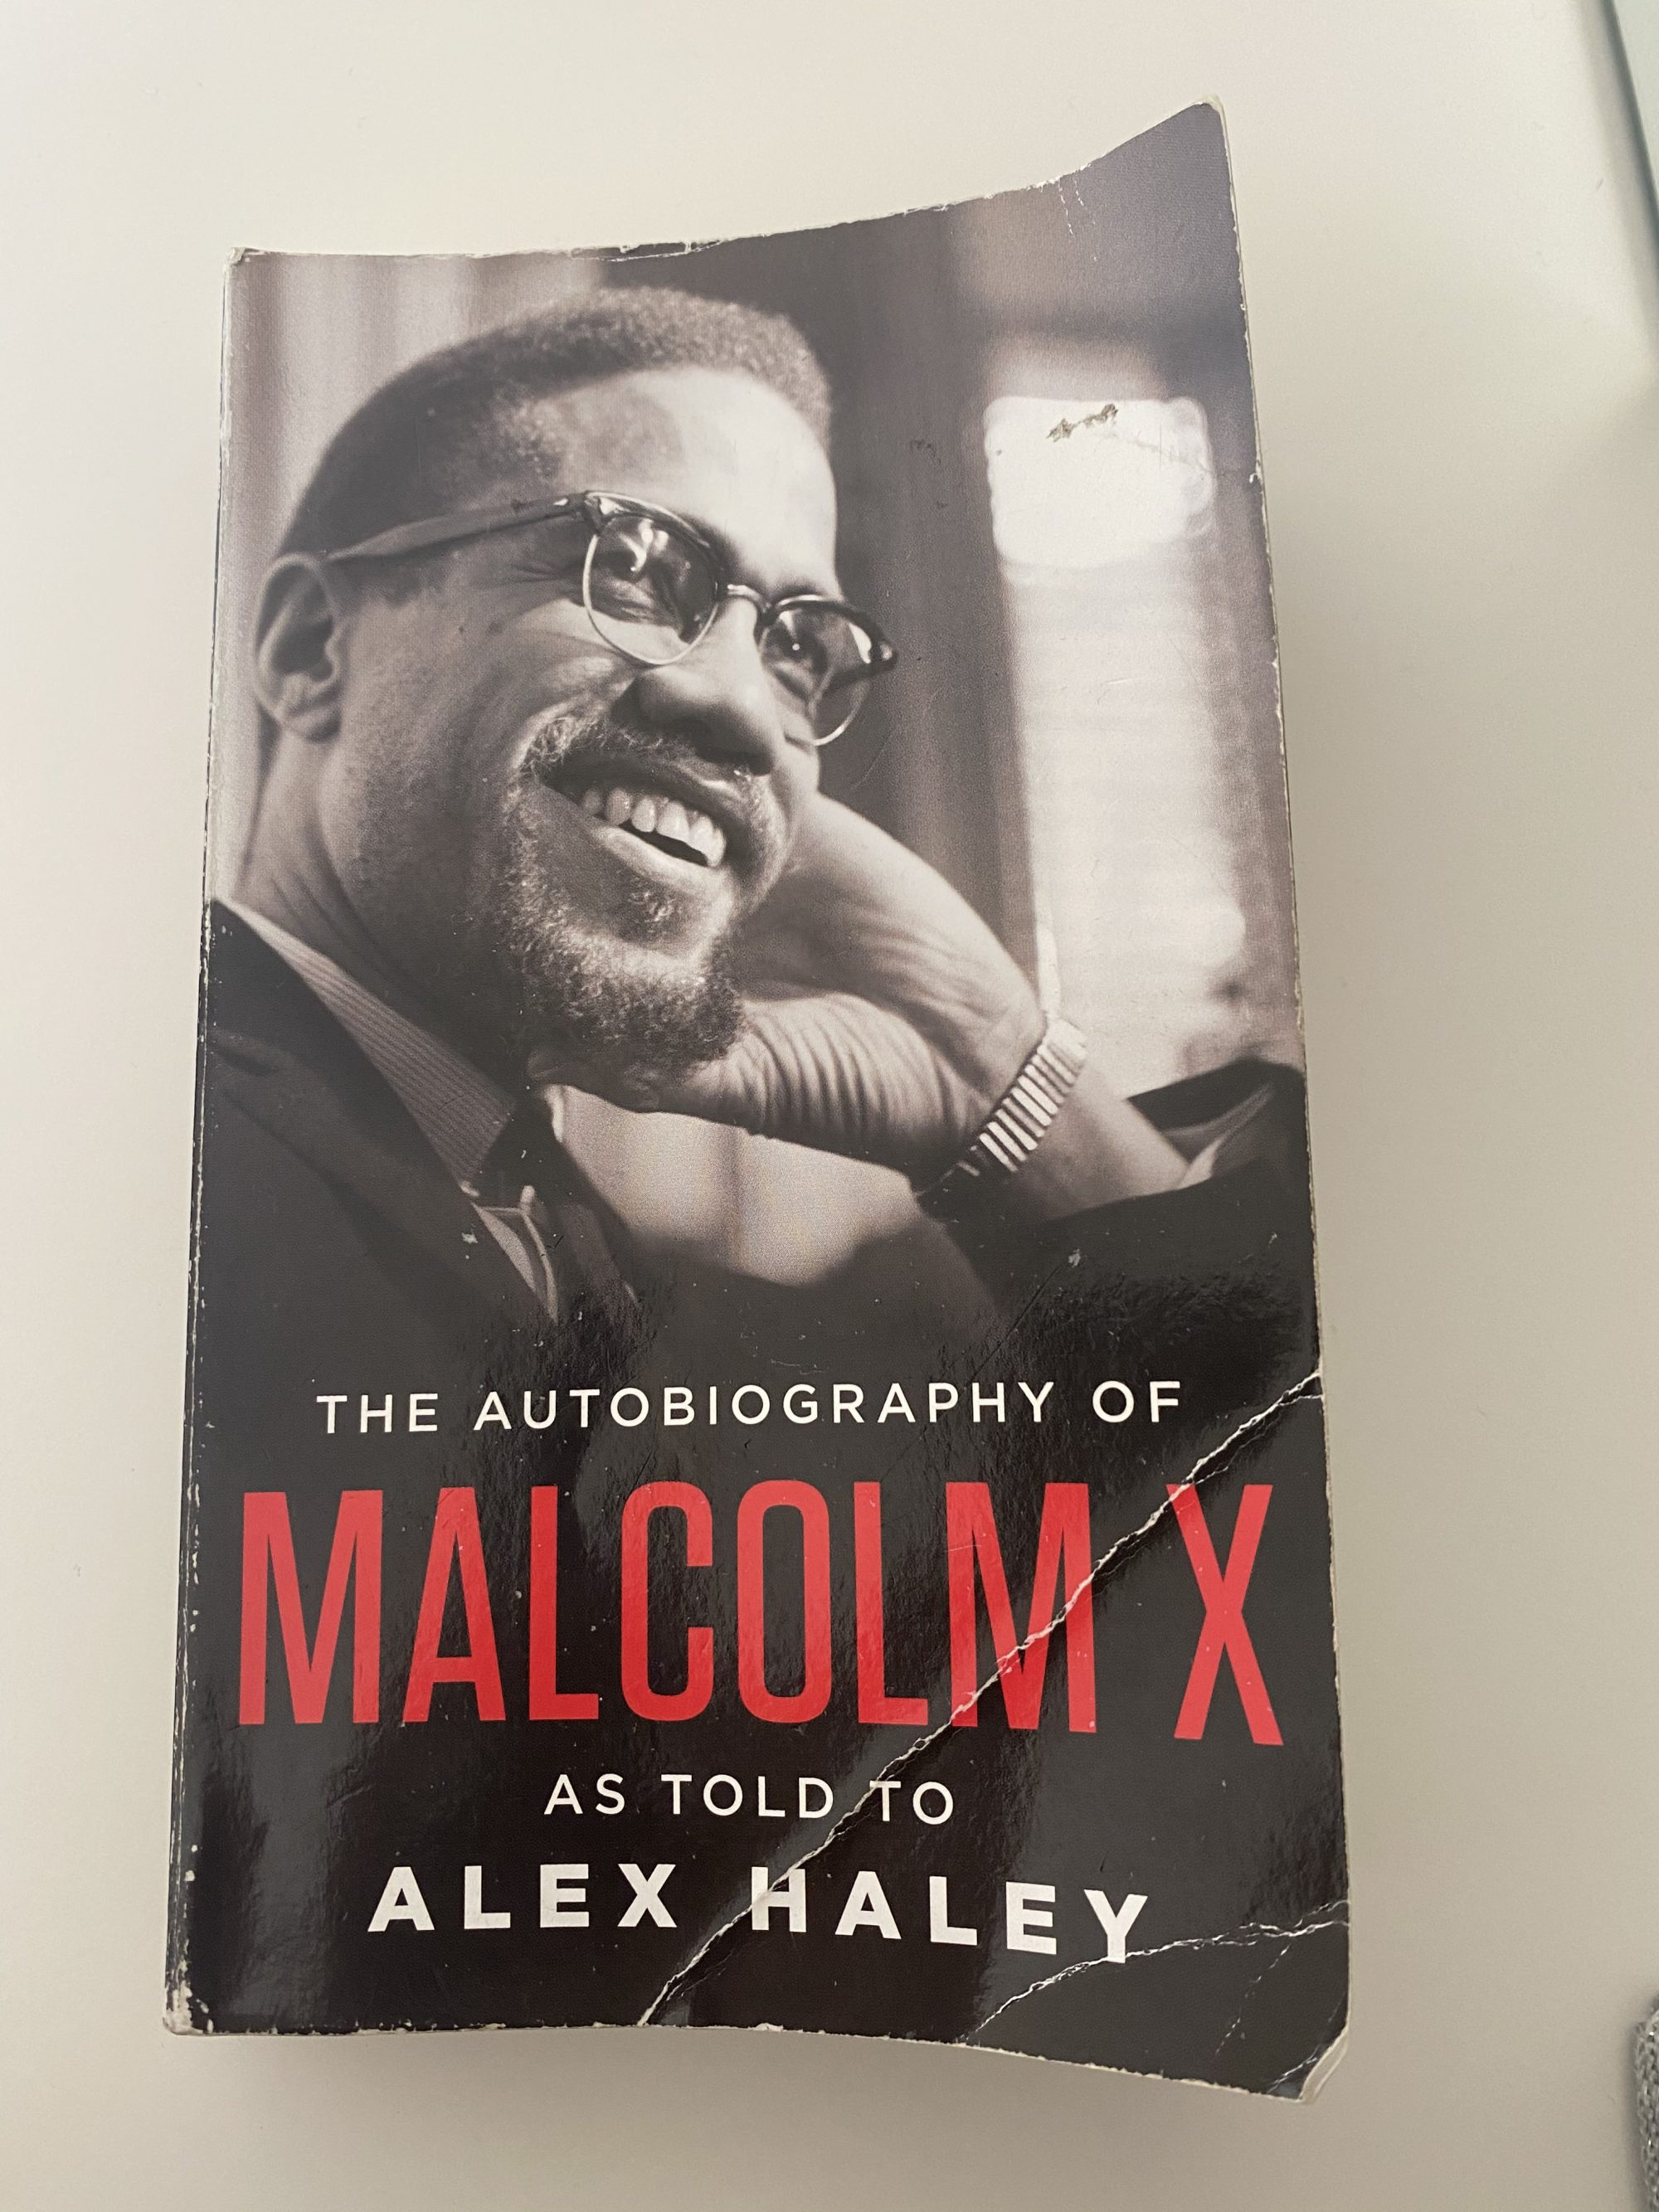 MEND Book Club Reads The Autobiography of Malcolm X